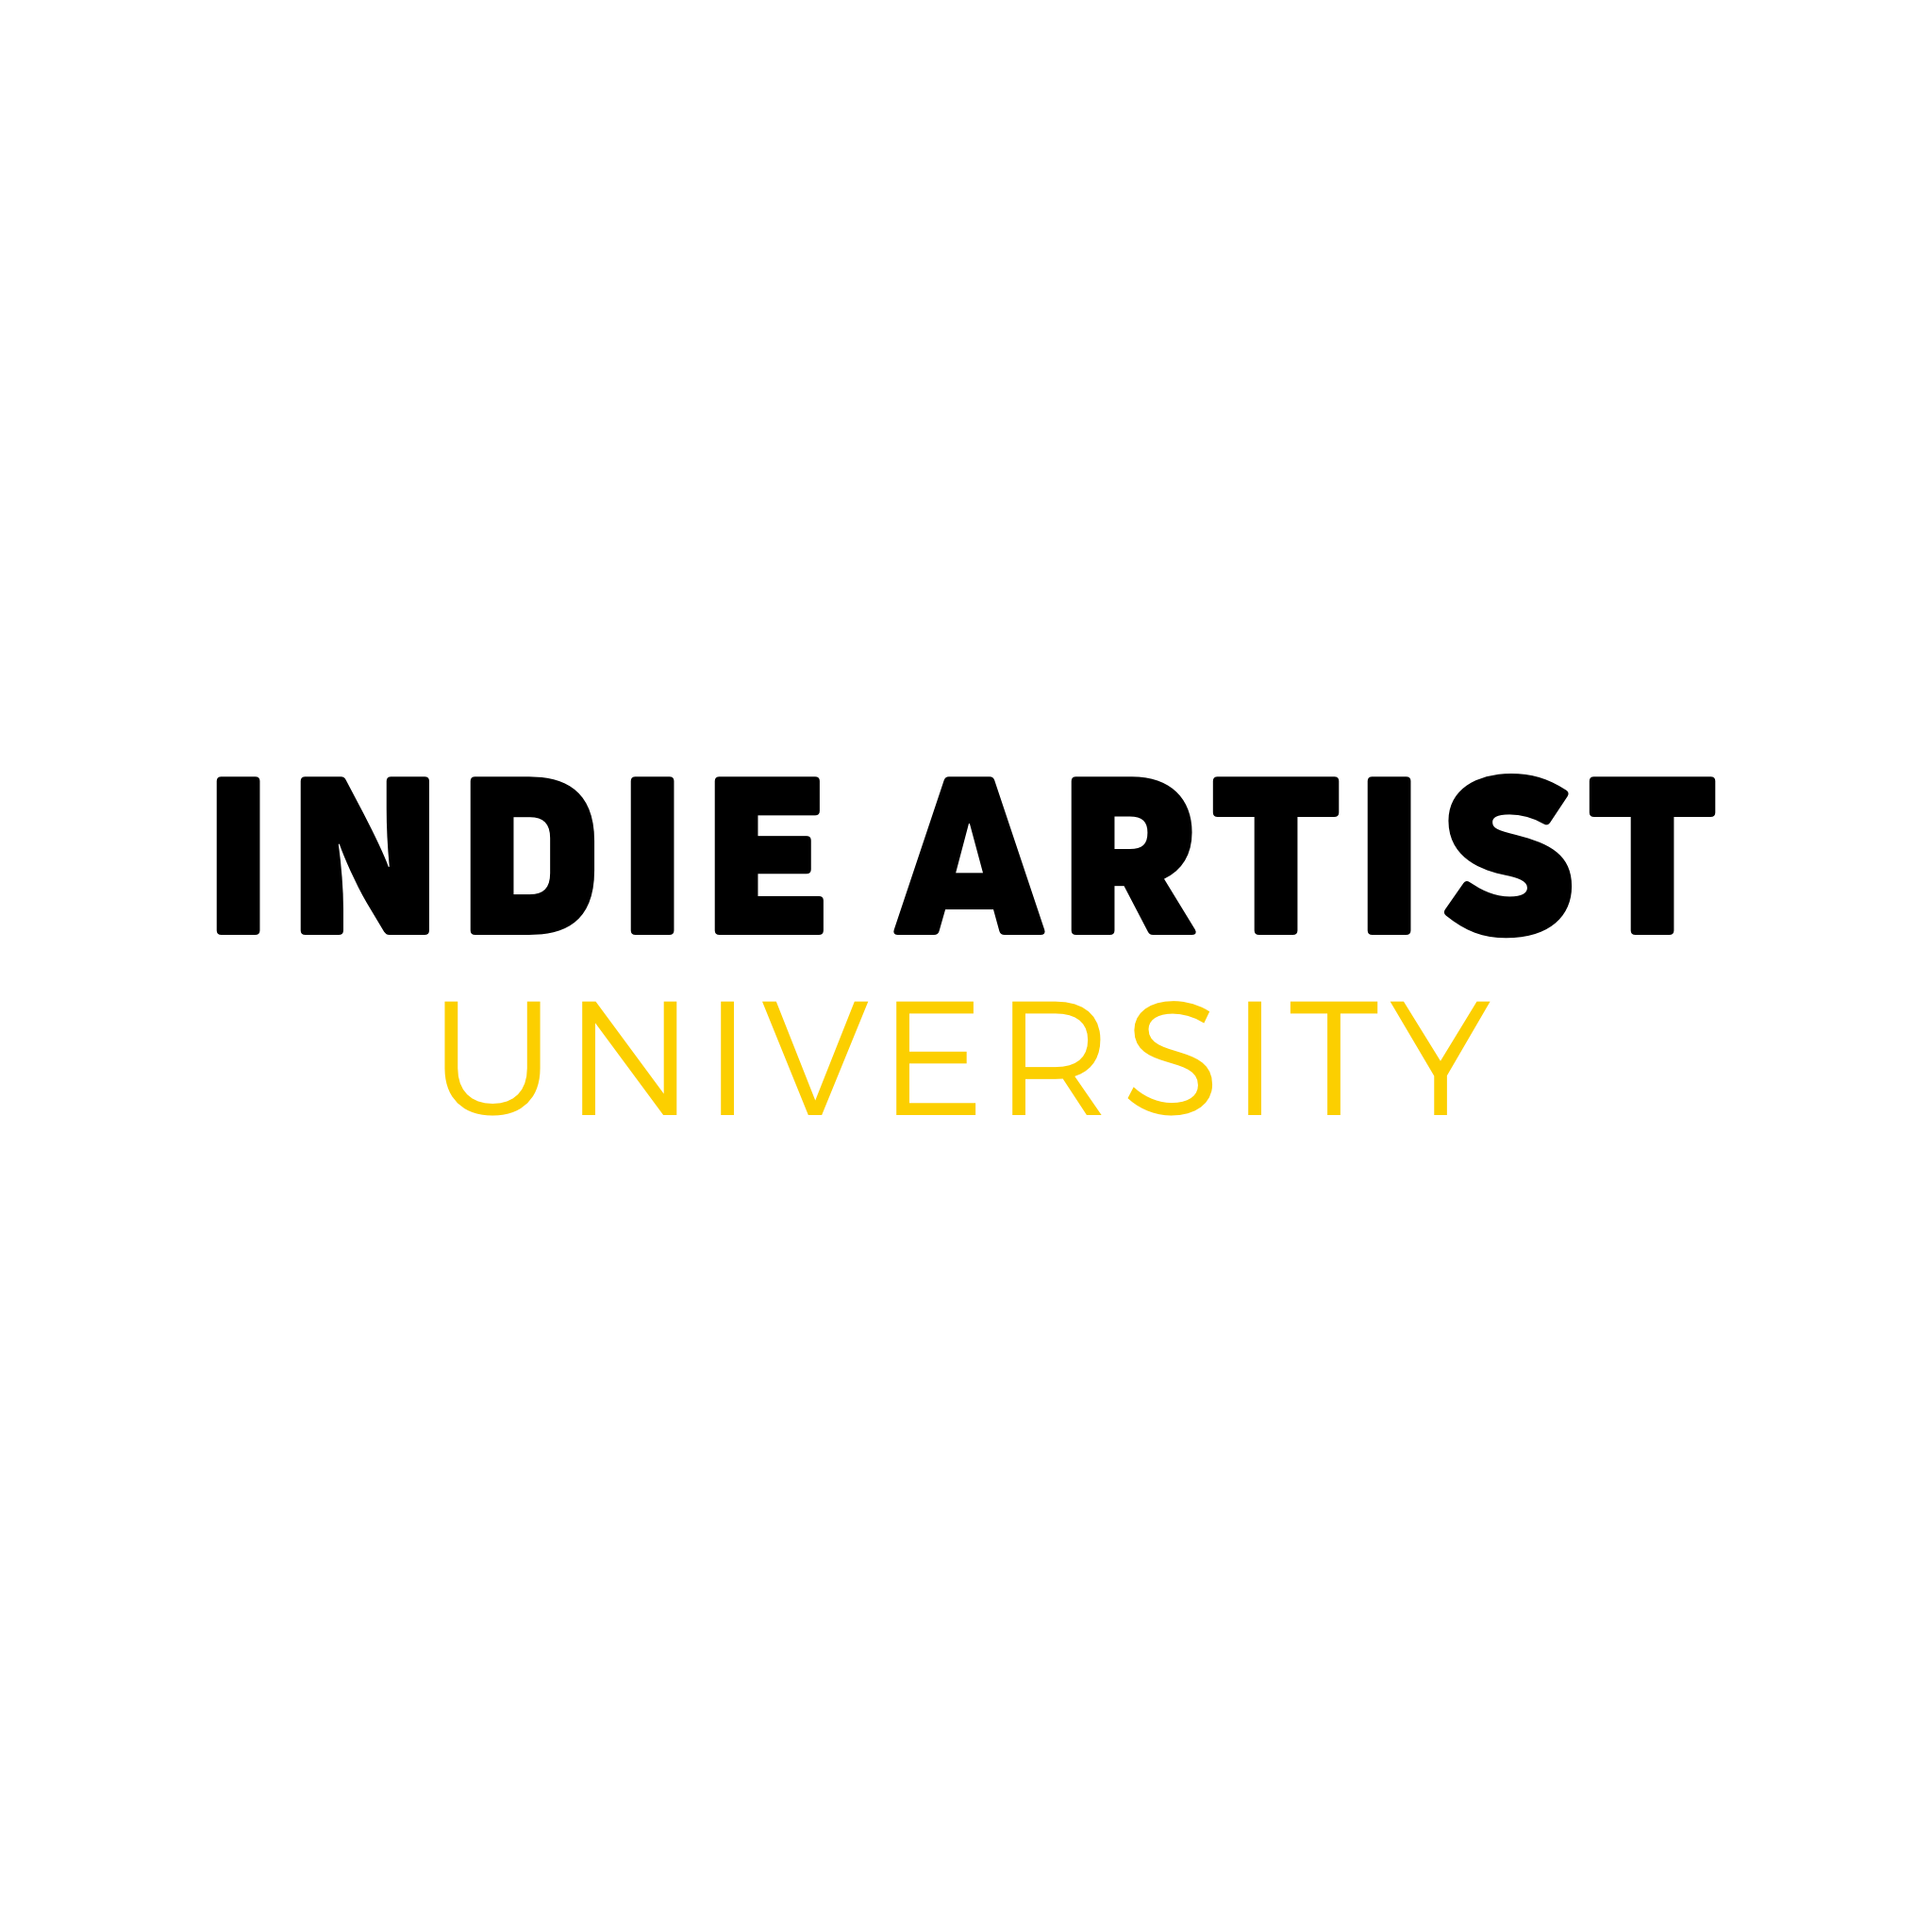 Indie Artist University logo BLACK & YELLOW transparent.png